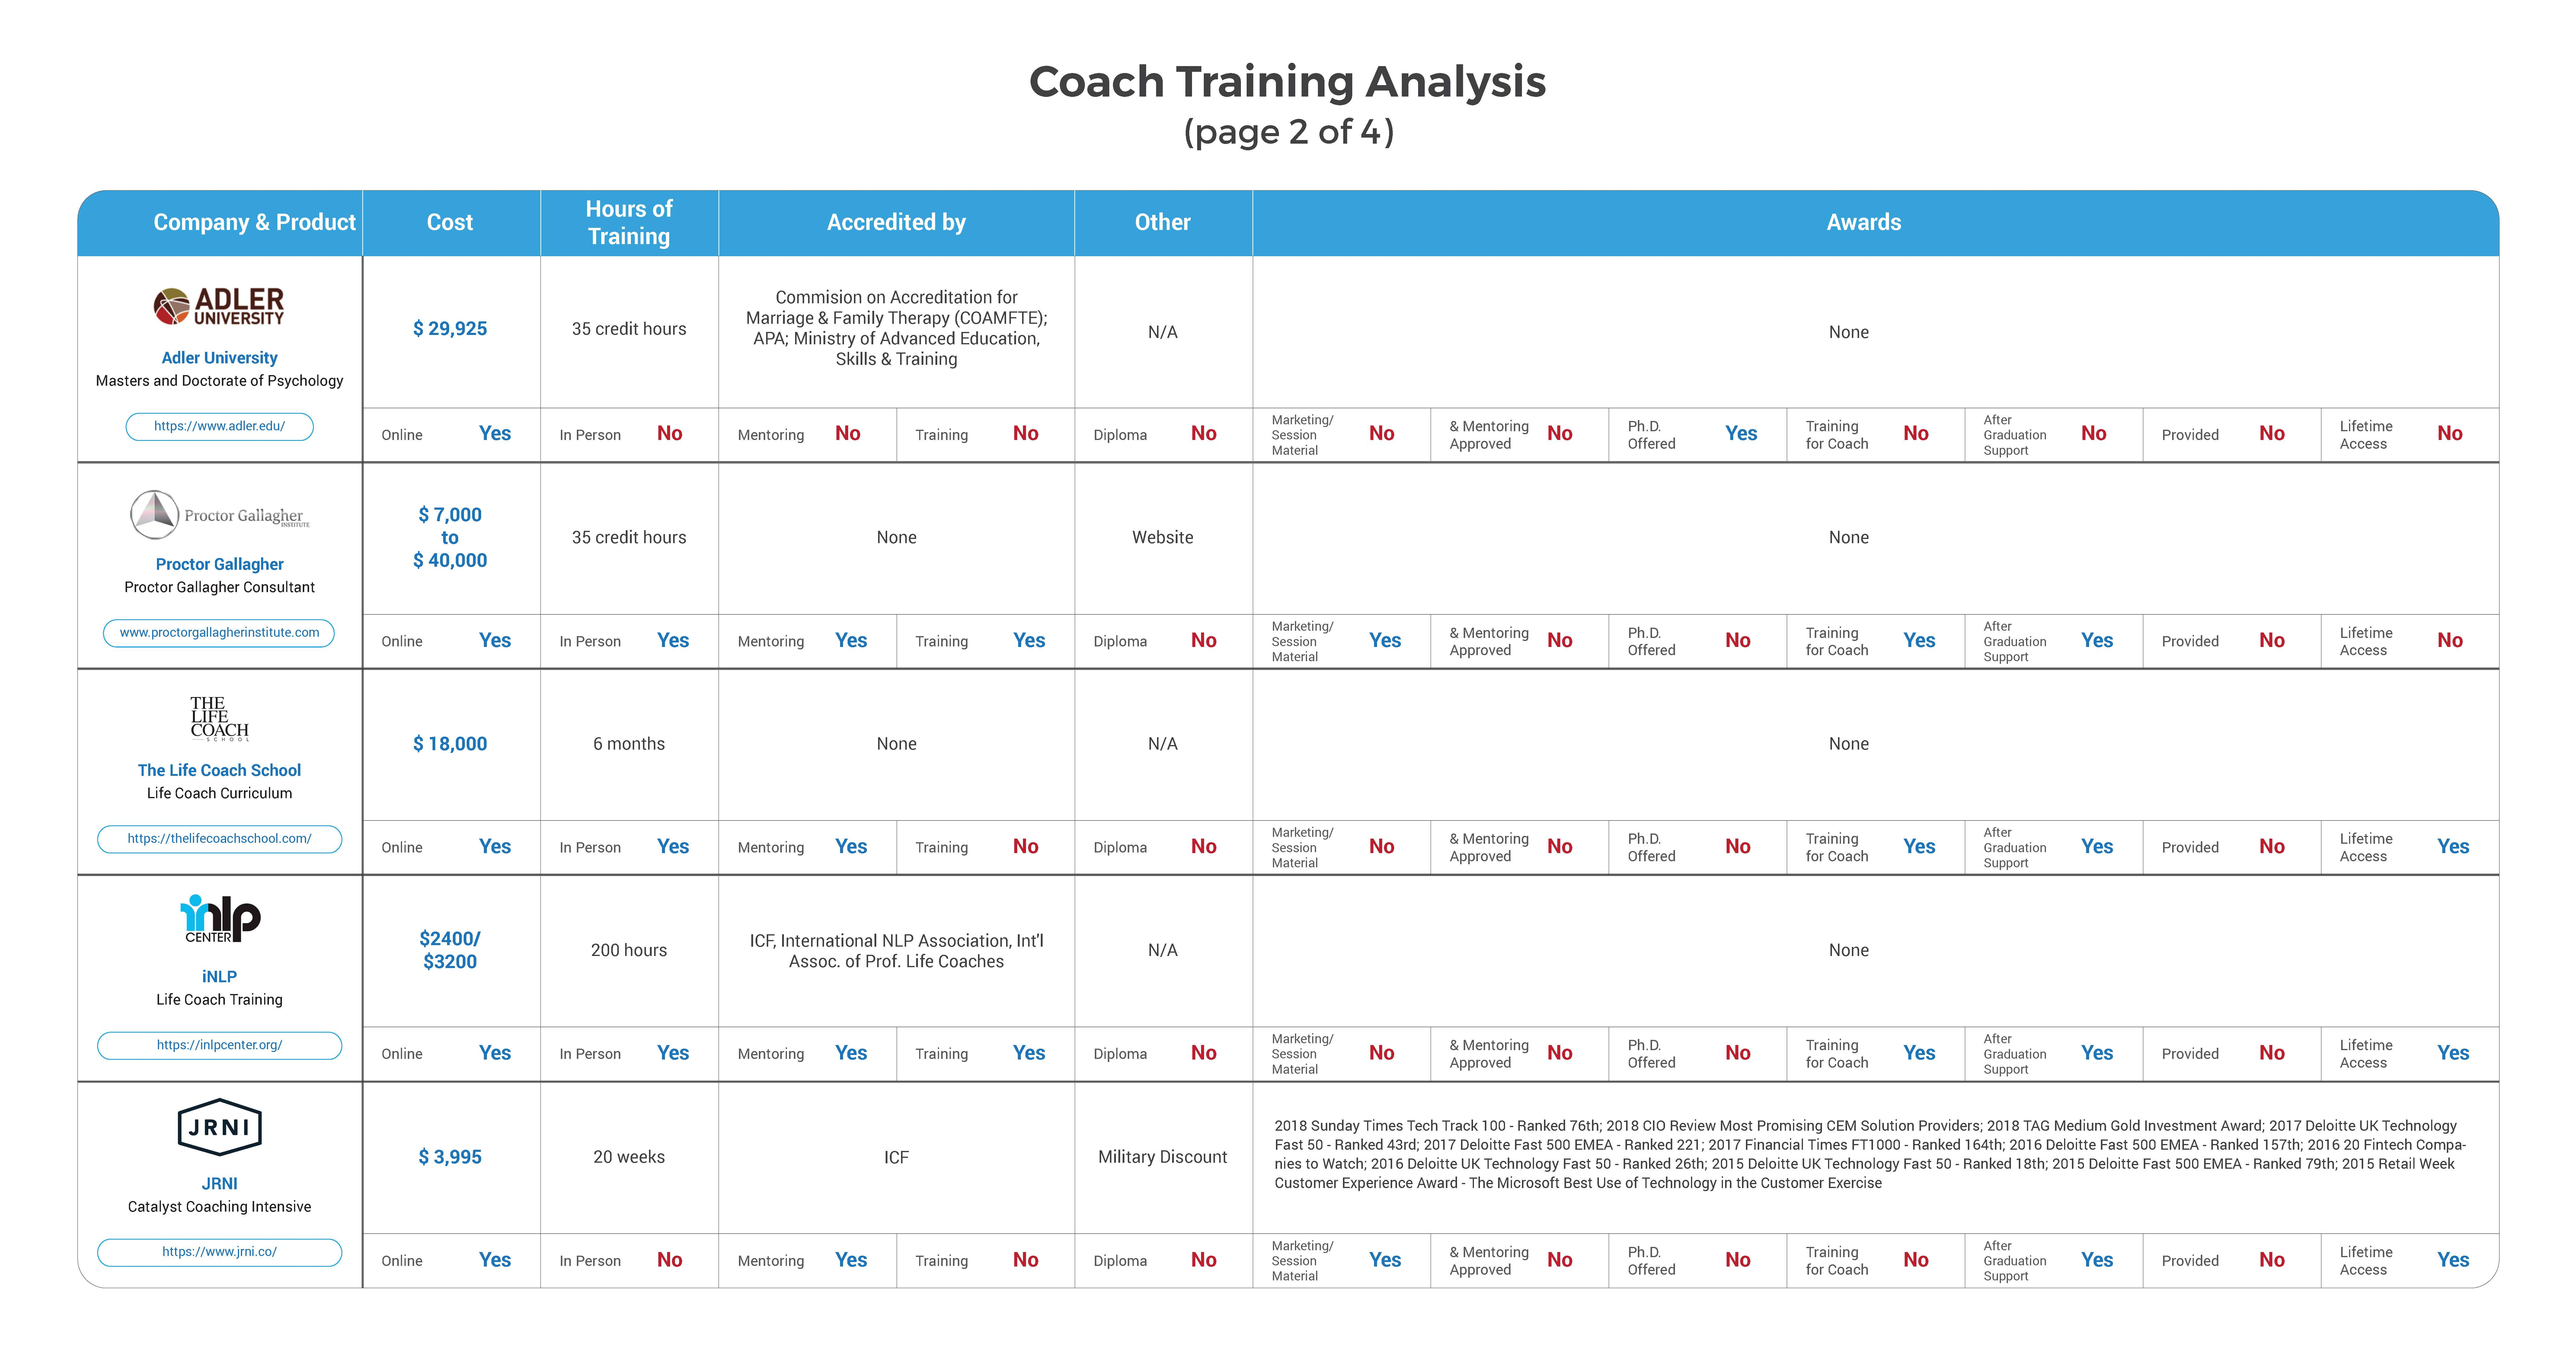 Comparison analysis of coach training courses and programs by some of the leading coaching companies